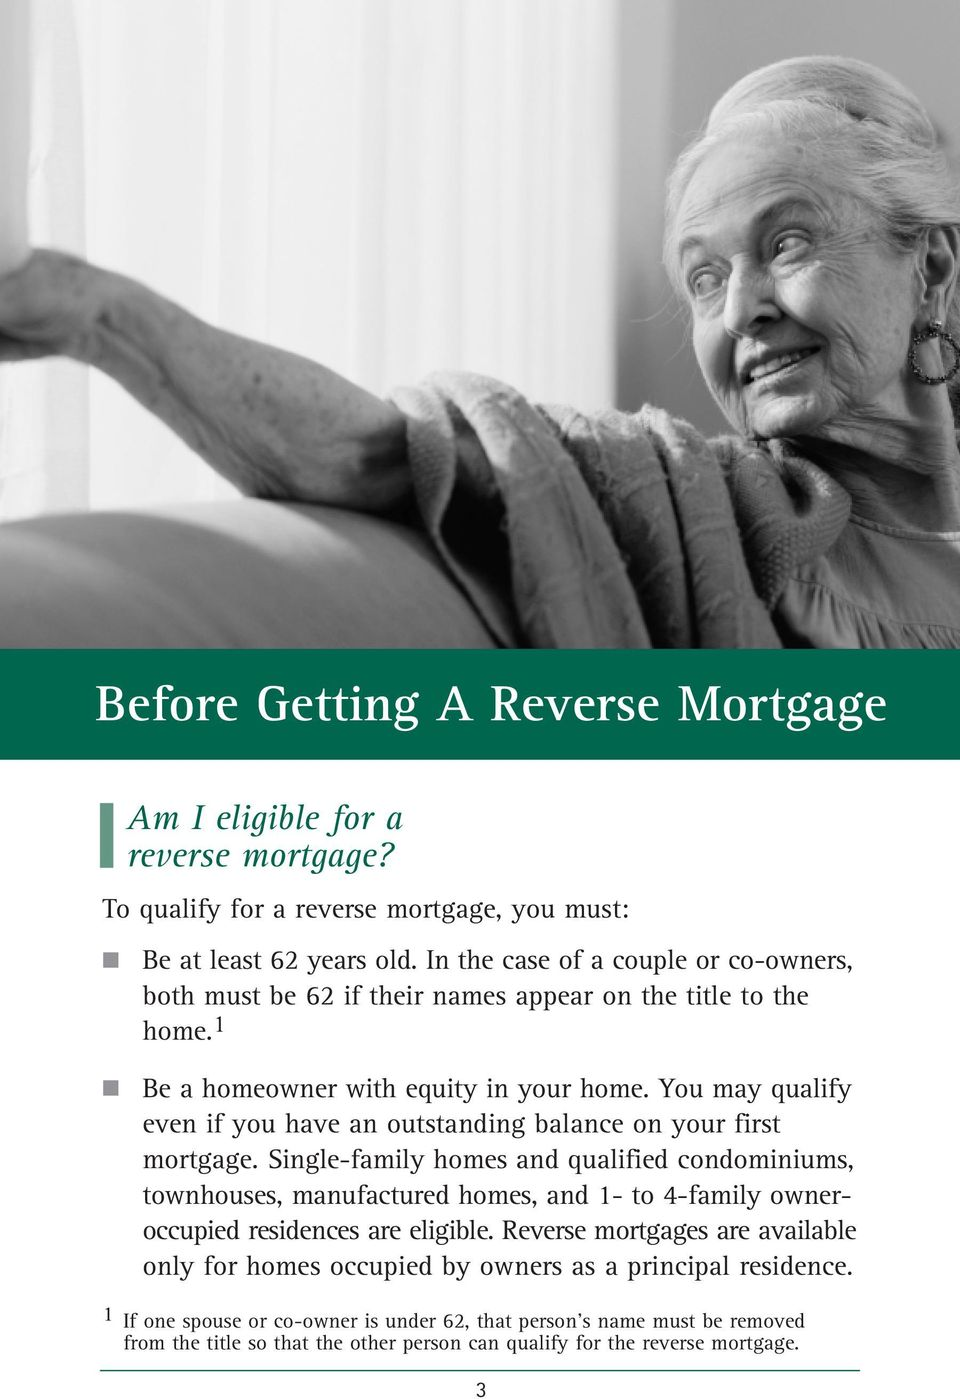 You may qualify even if you have an outstanding balance on your first mortgage.